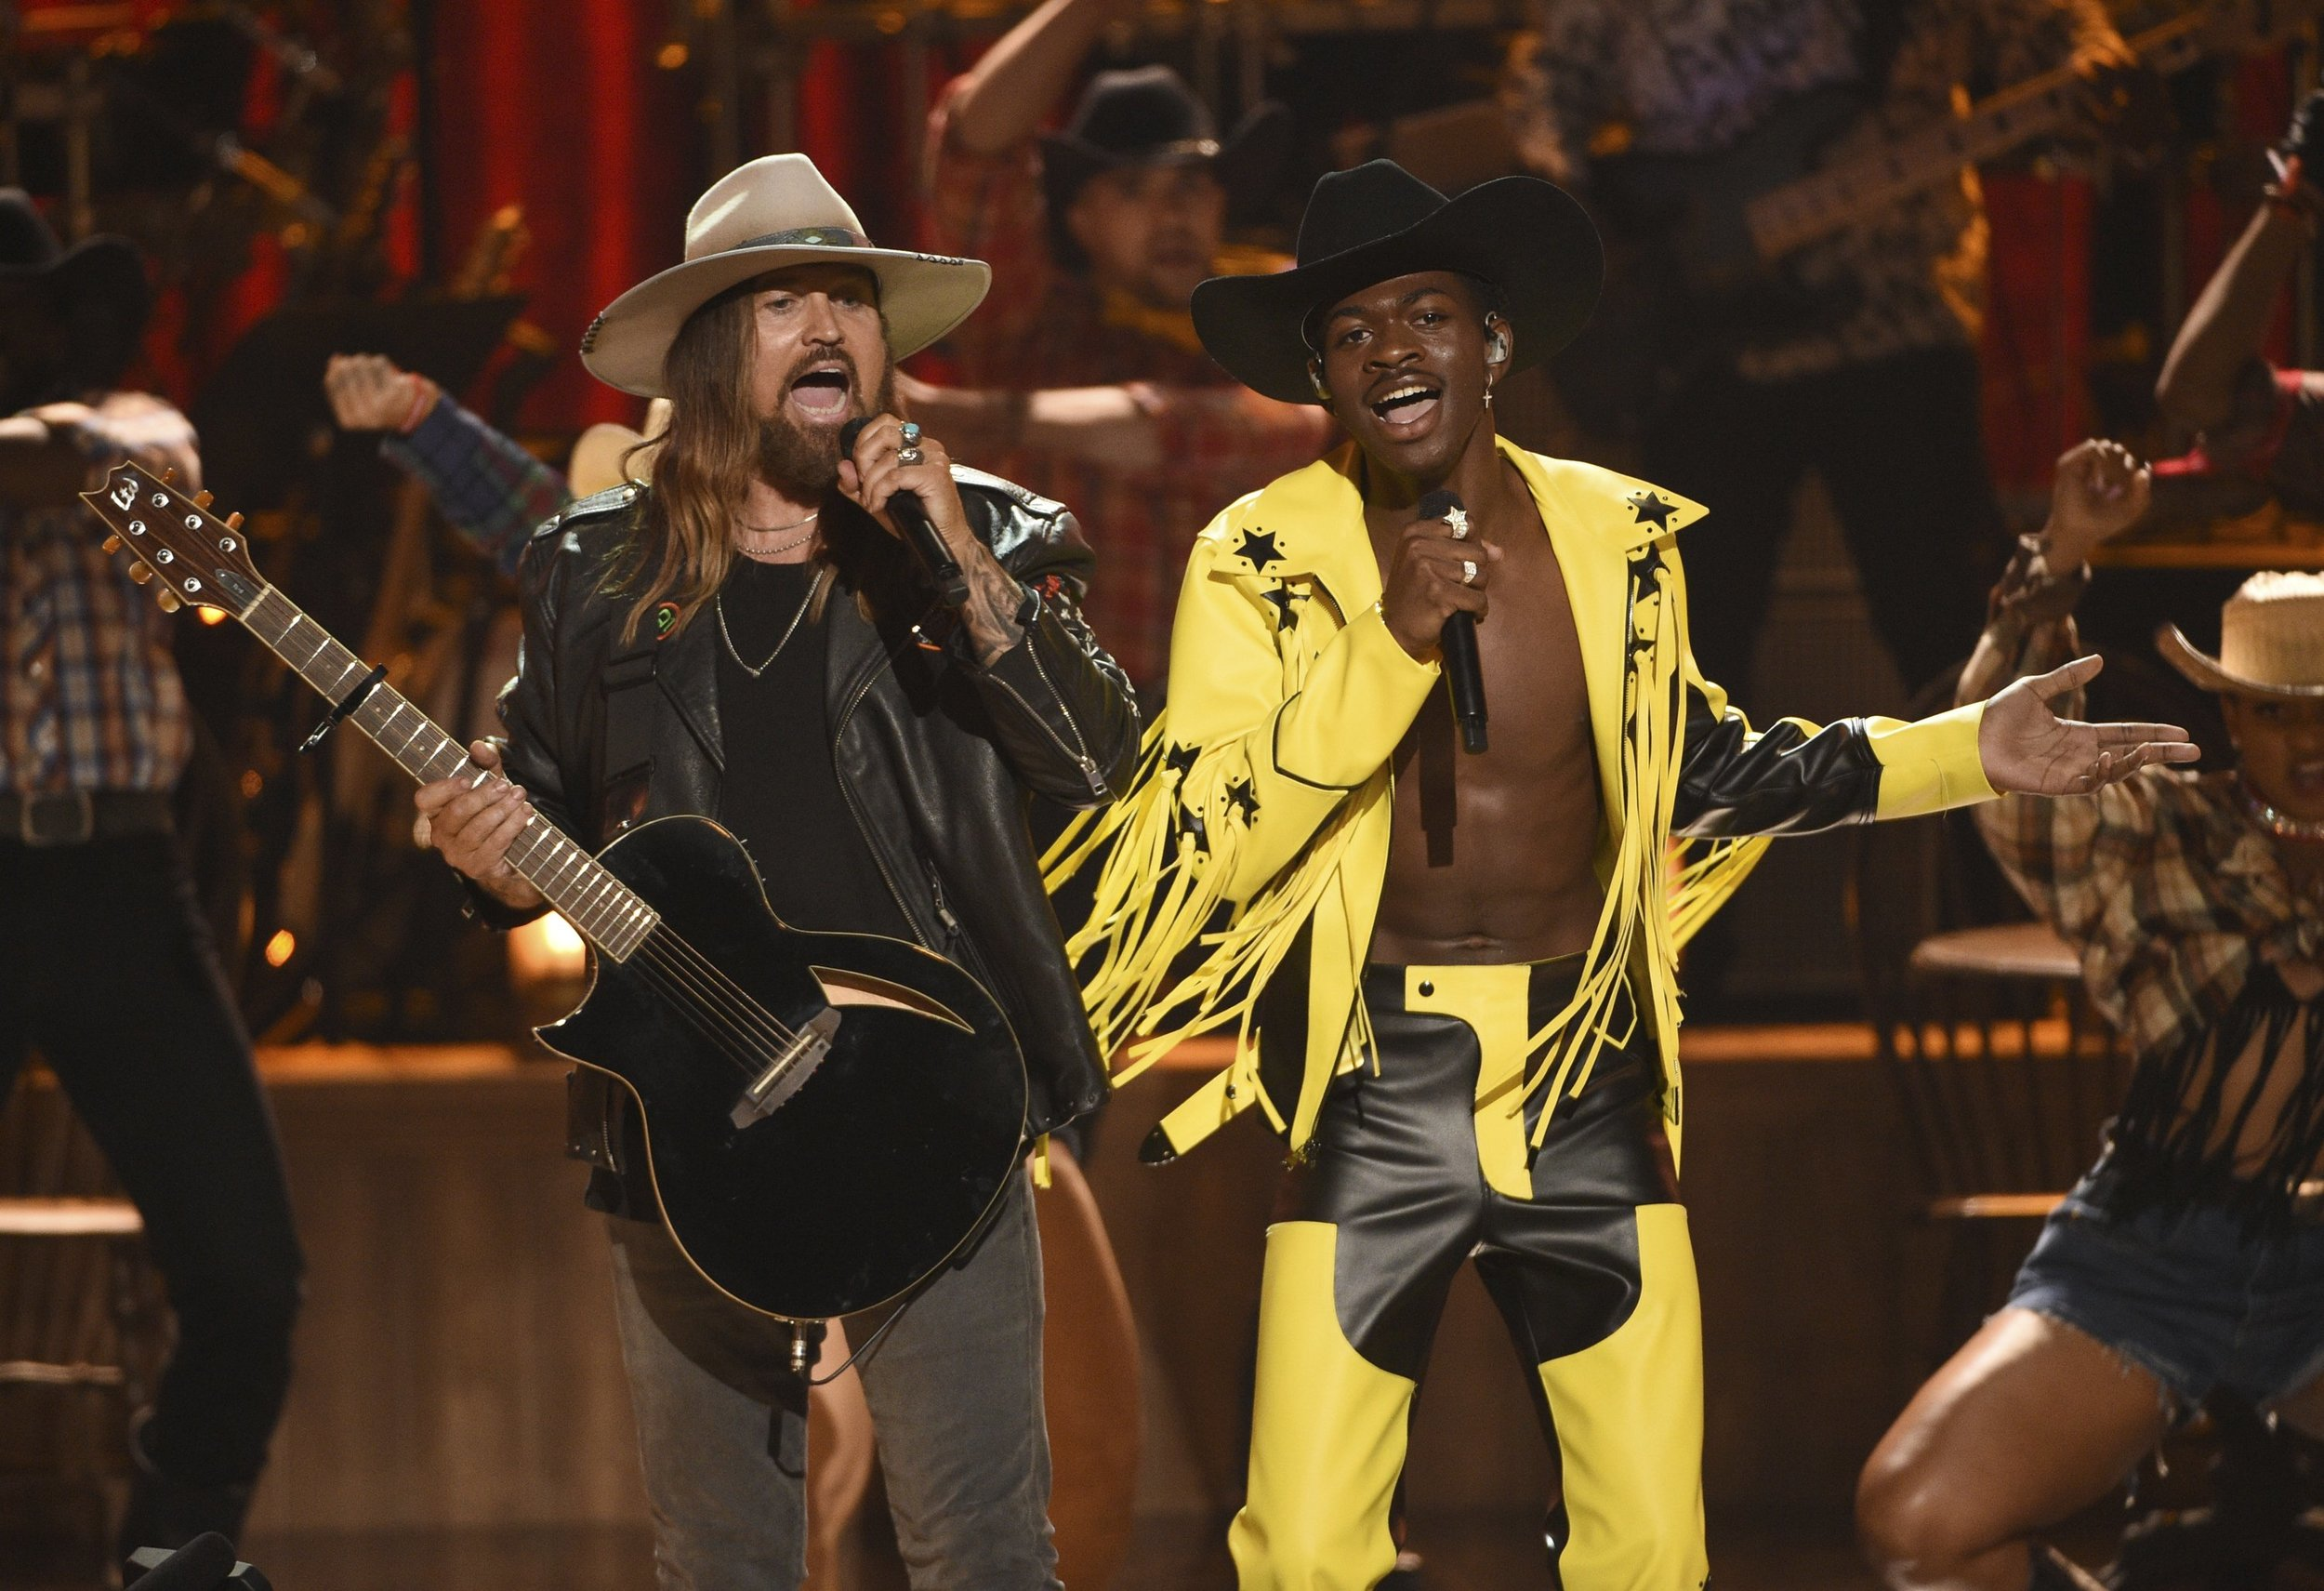 "- Lil Nas X alongside Billy Ray Cyrus performance took us on a Rodeo Ride. Lil Nas has stirred up the Country Music Industry with his latest song ""Old Town Road"". The song itself has a catchy beat to it, everyone can listen to it from young to old. There have been some unsavory comments made about his collaboration but at the end of the day, the song is sweeping the charts."